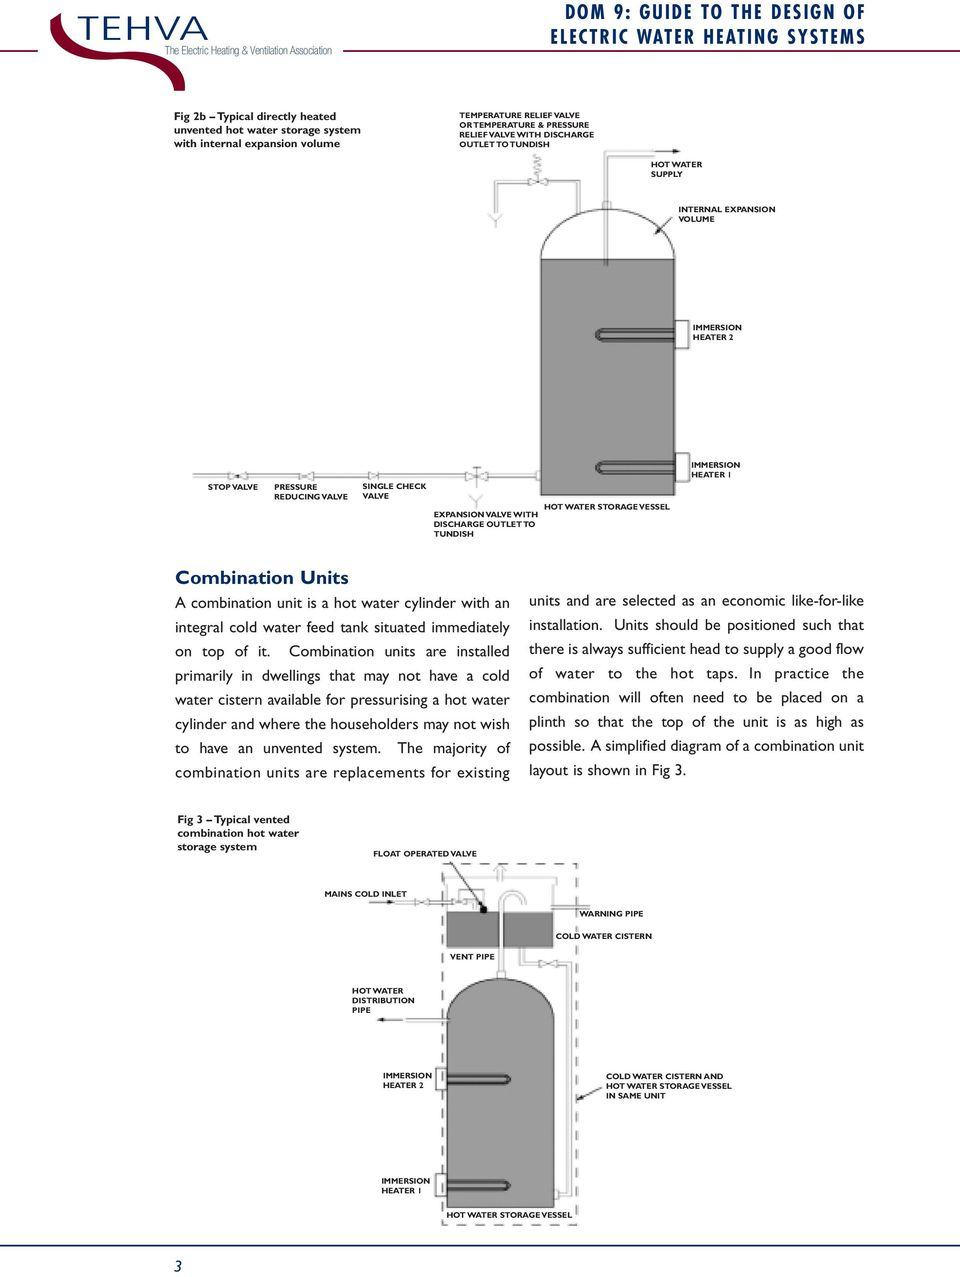 DOM 9: GUIDE TO THE DESIGN OF ELECTRIC WATER HEATING SYSTEMS ...